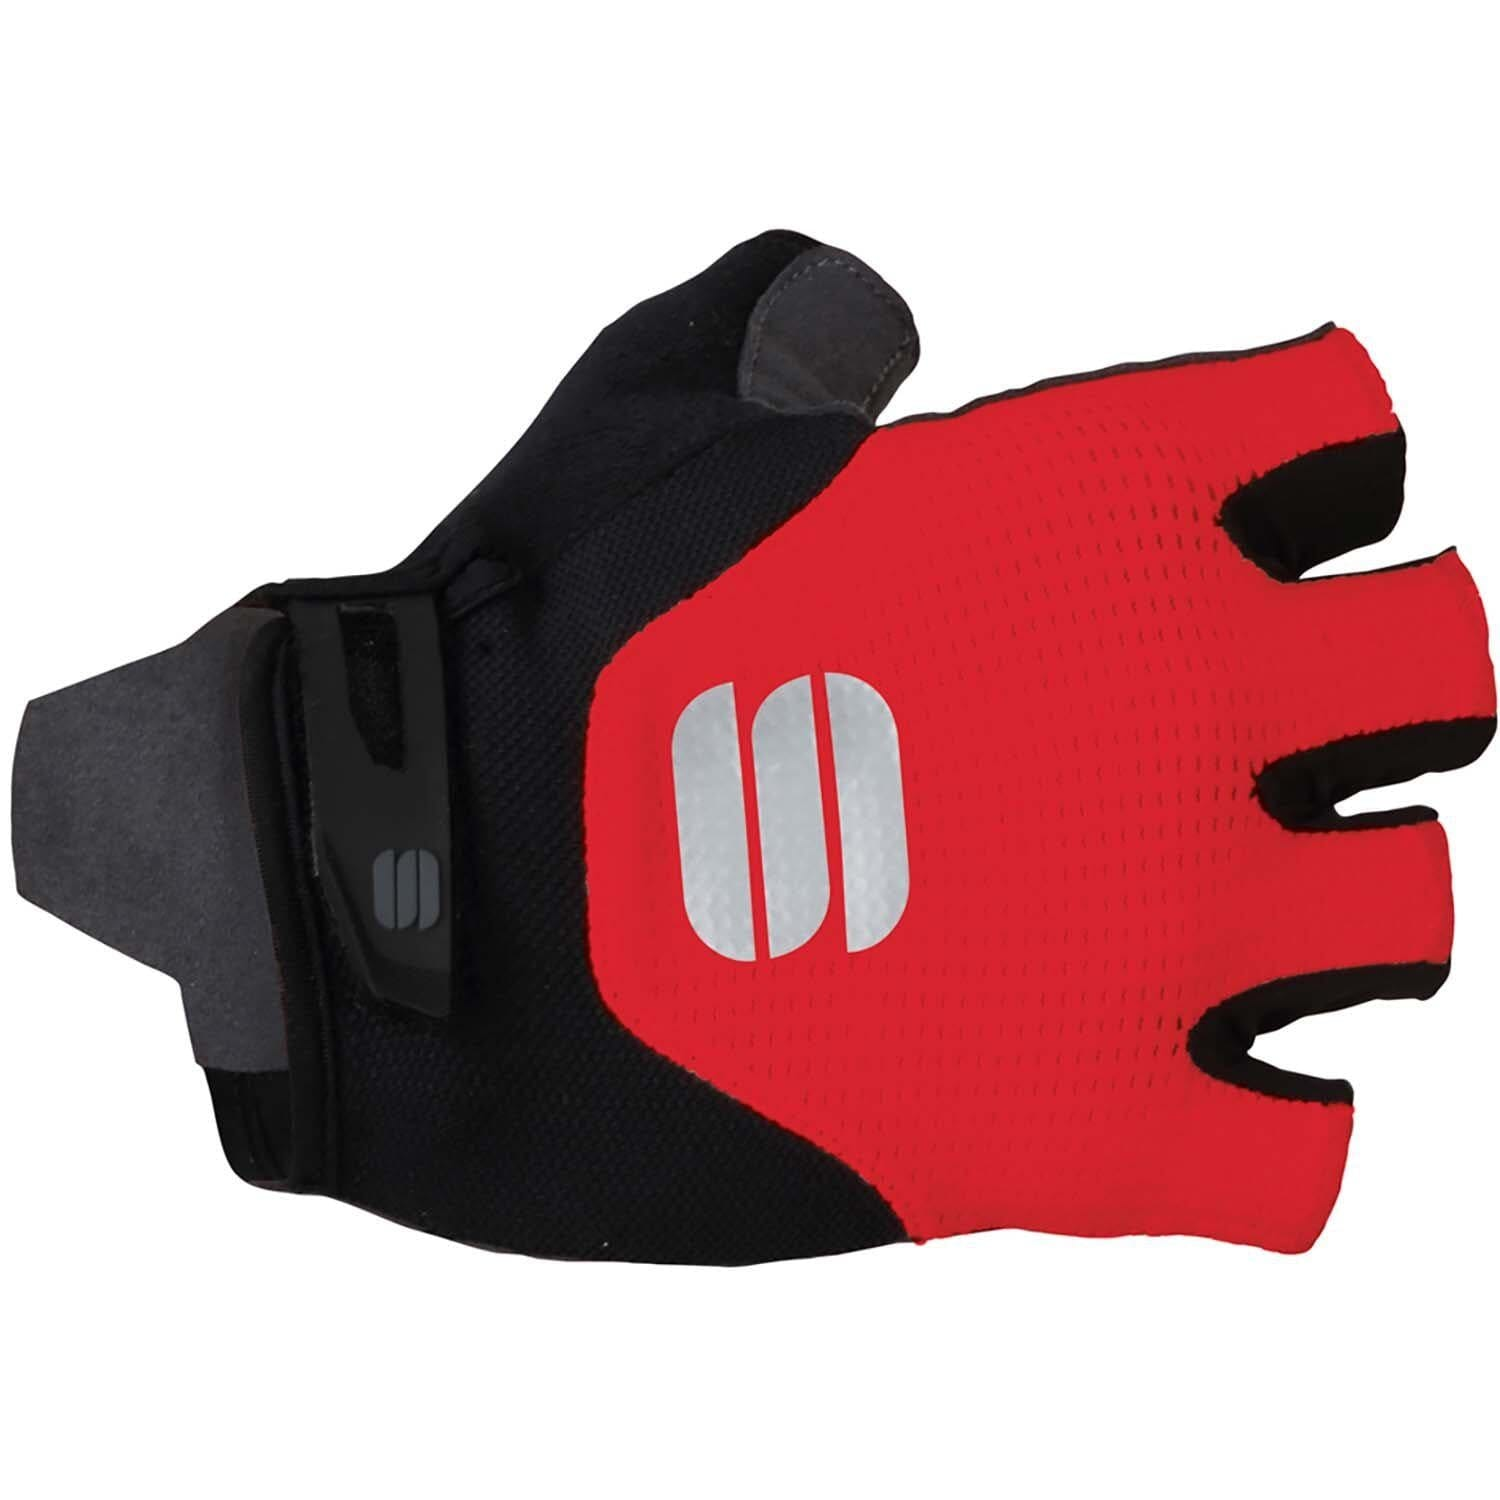 Sportful-Sportful Neo Gloves-Red/Black-XS-SF020535671-saddleback-elite-performance-cycling